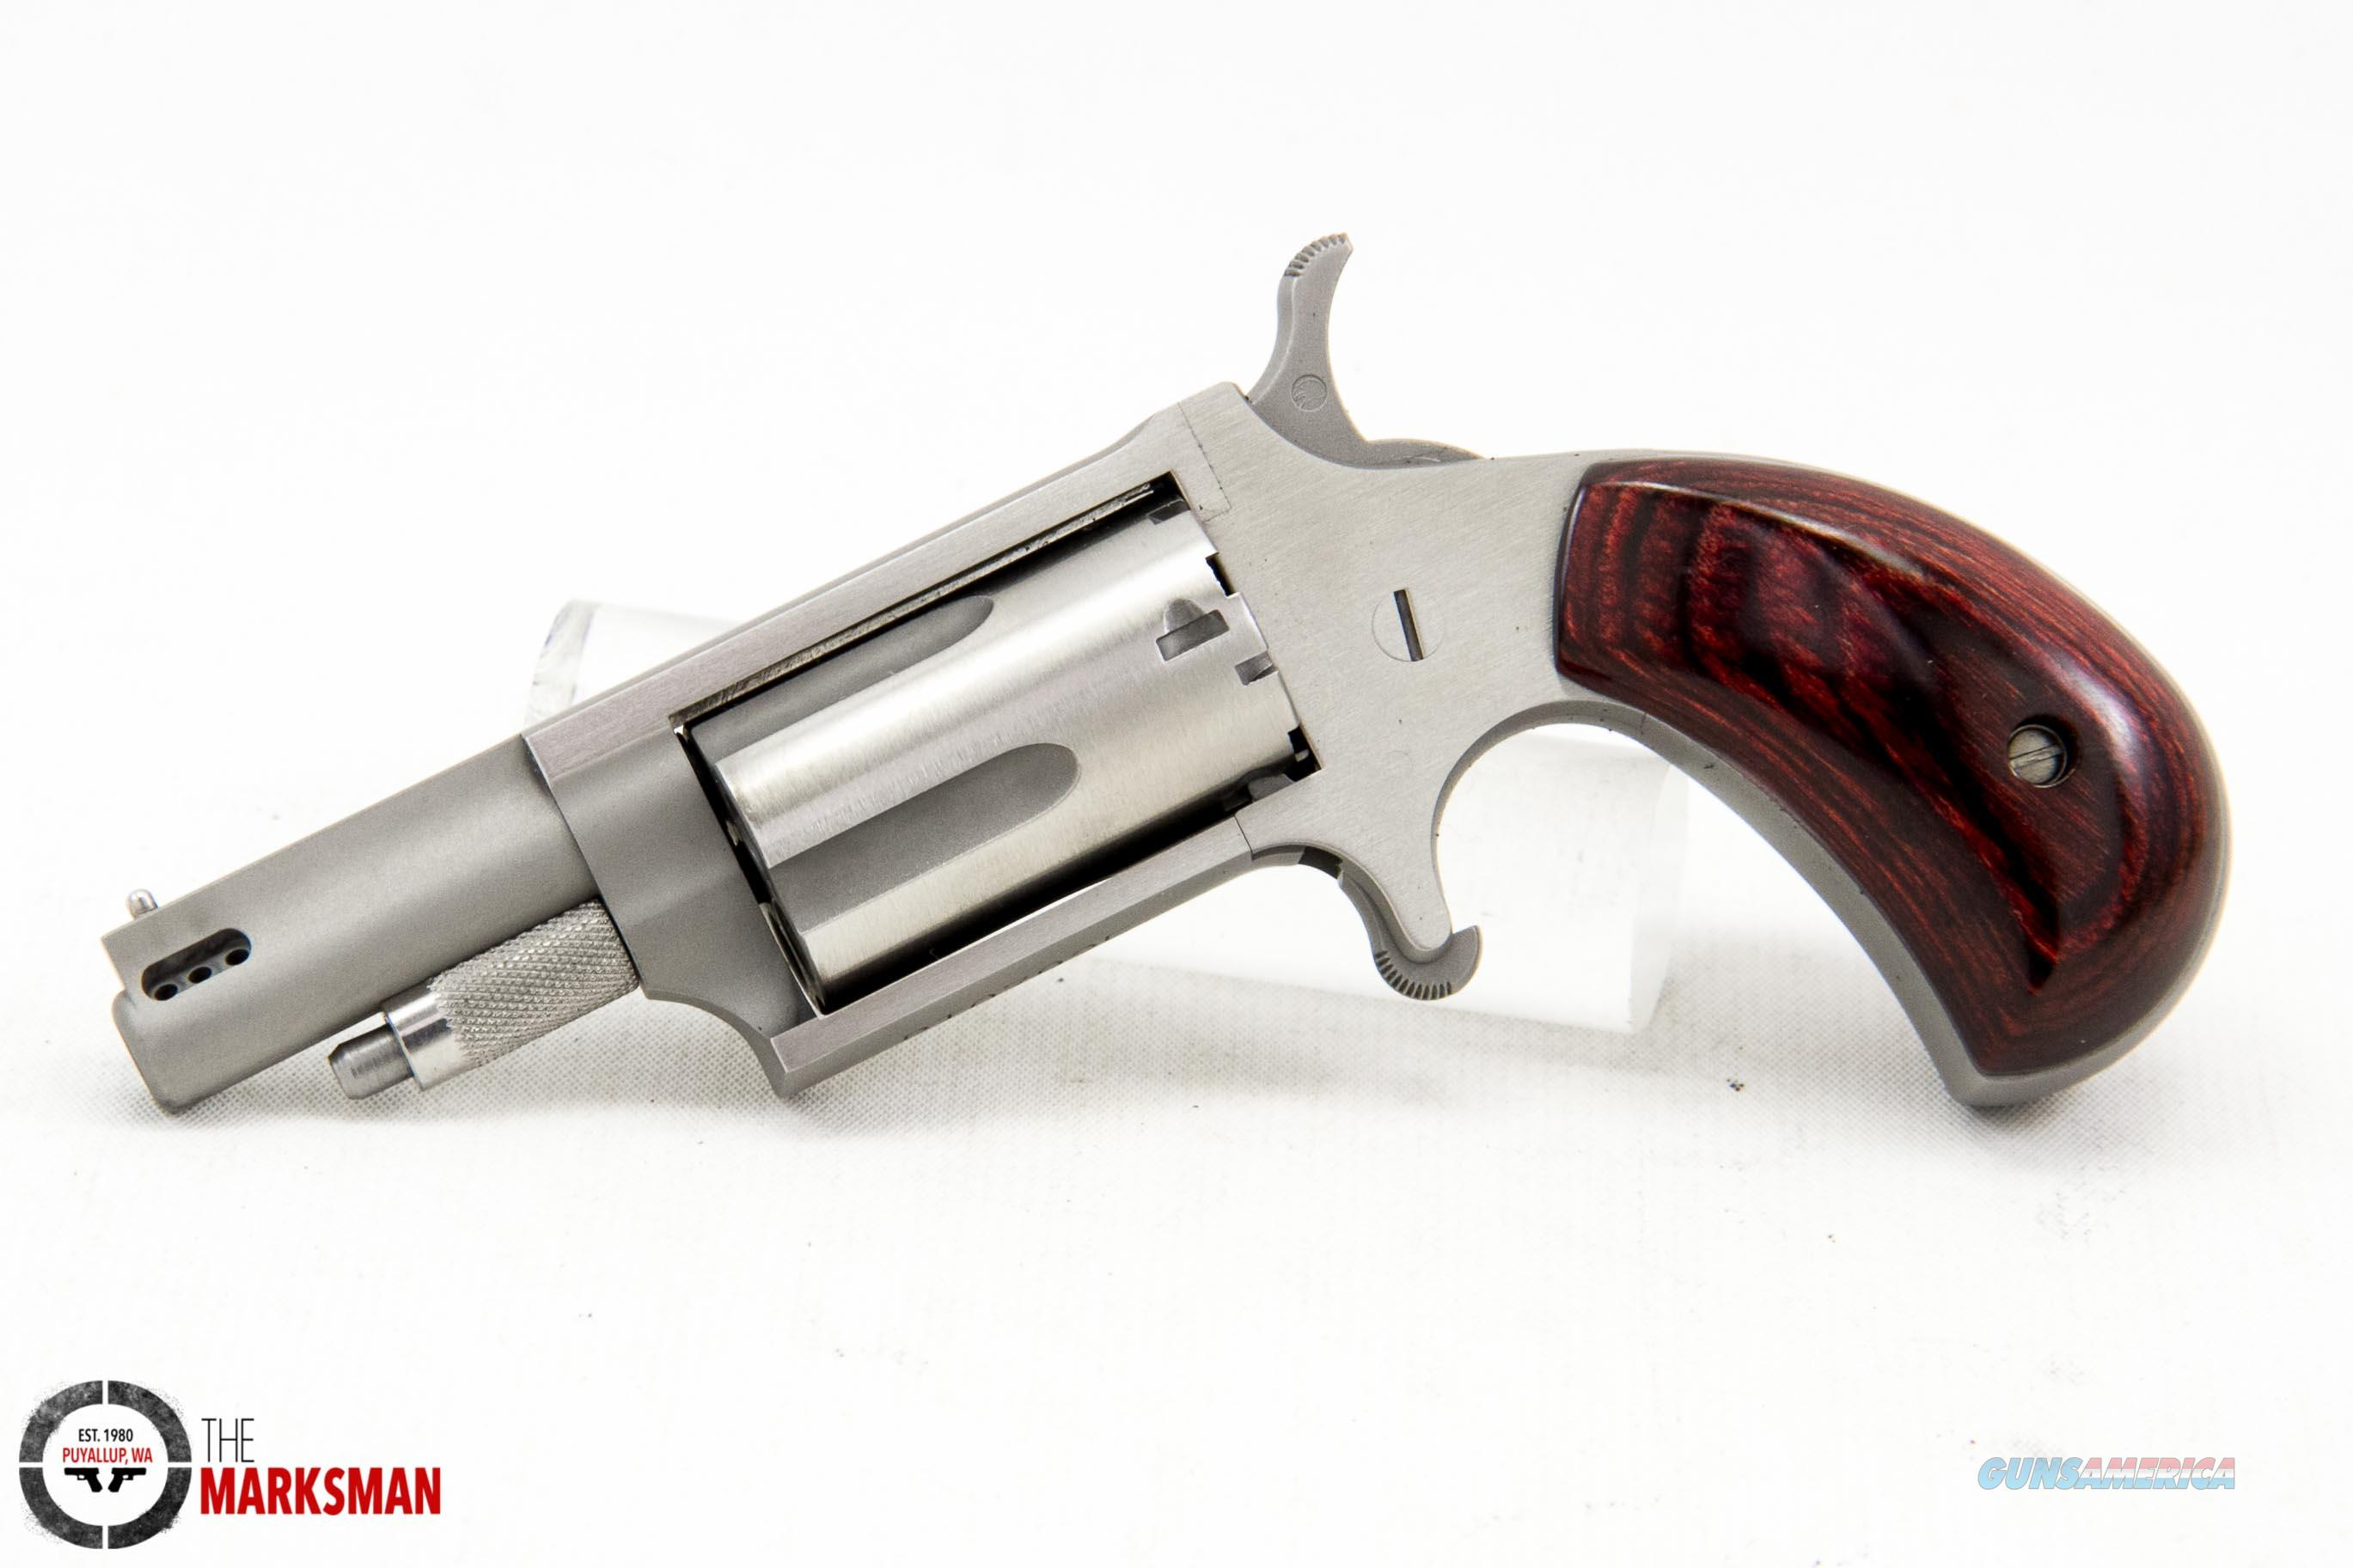 north american arms - HD2738×1825